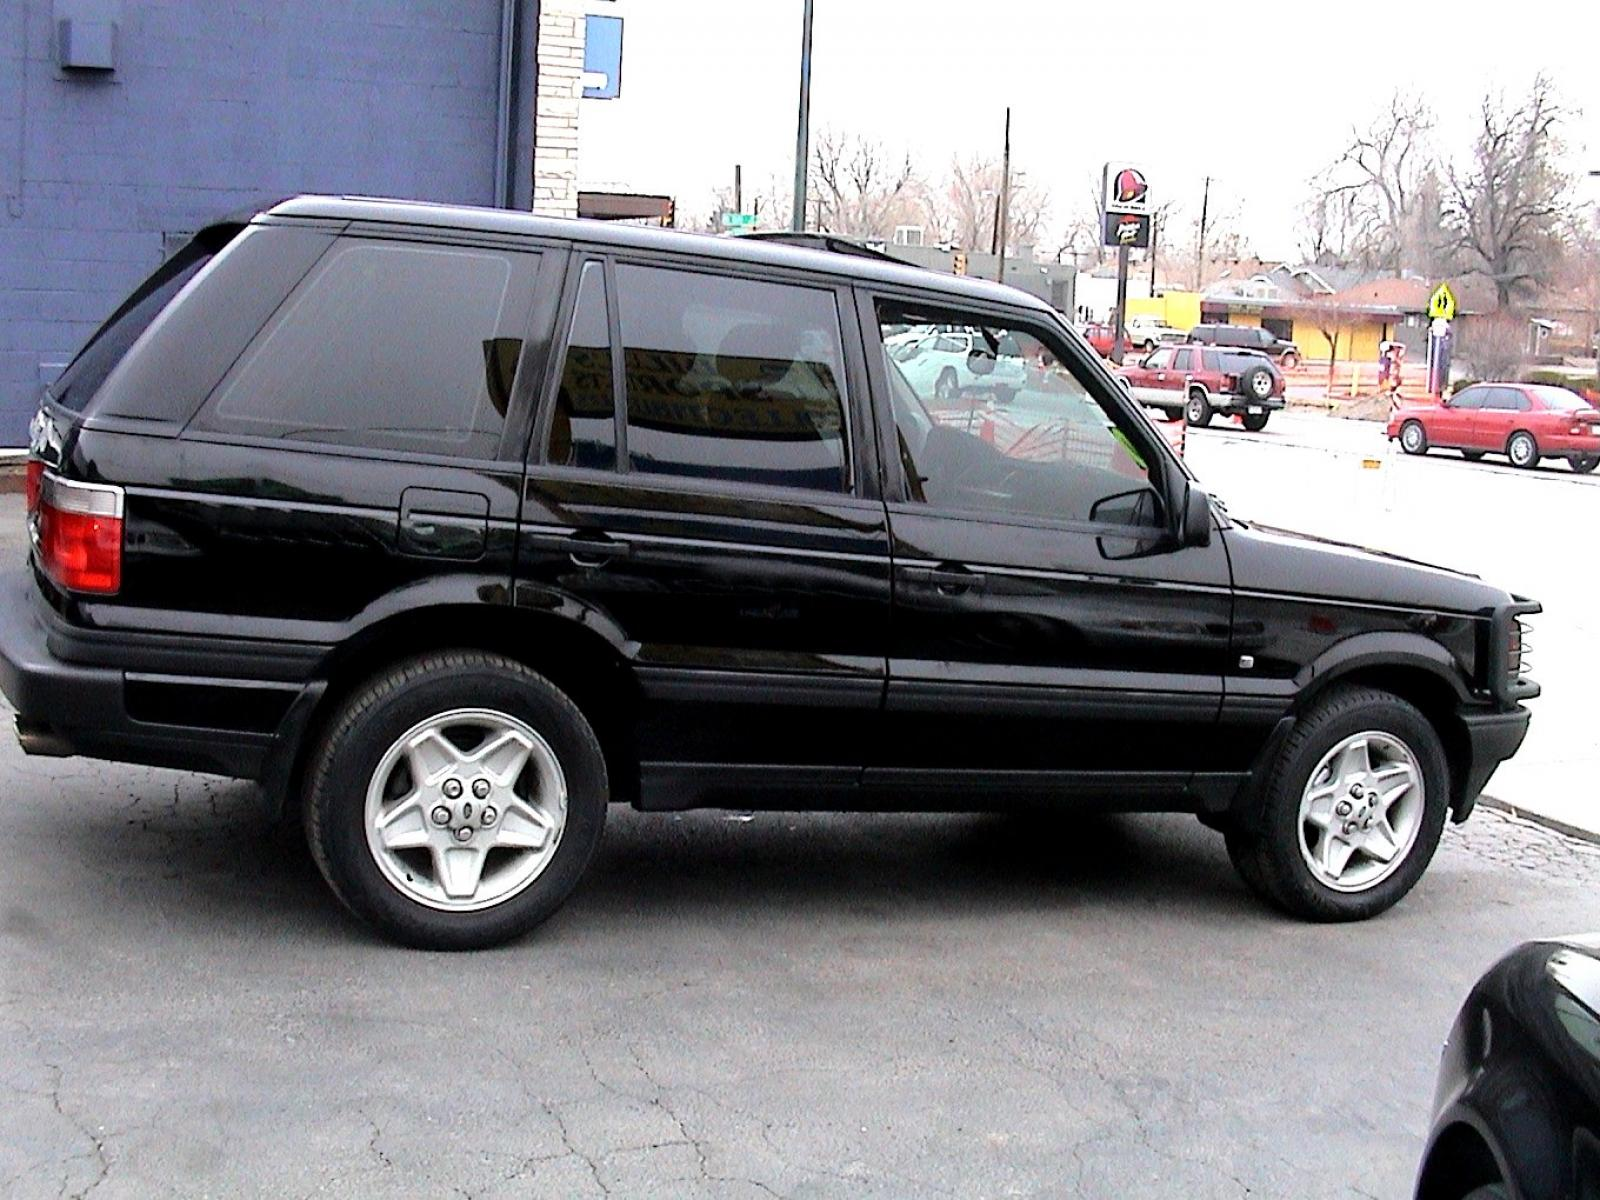 1996 land rover range rover information and photos zombiedrive. Black Bedroom Furniture Sets. Home Design Ideas